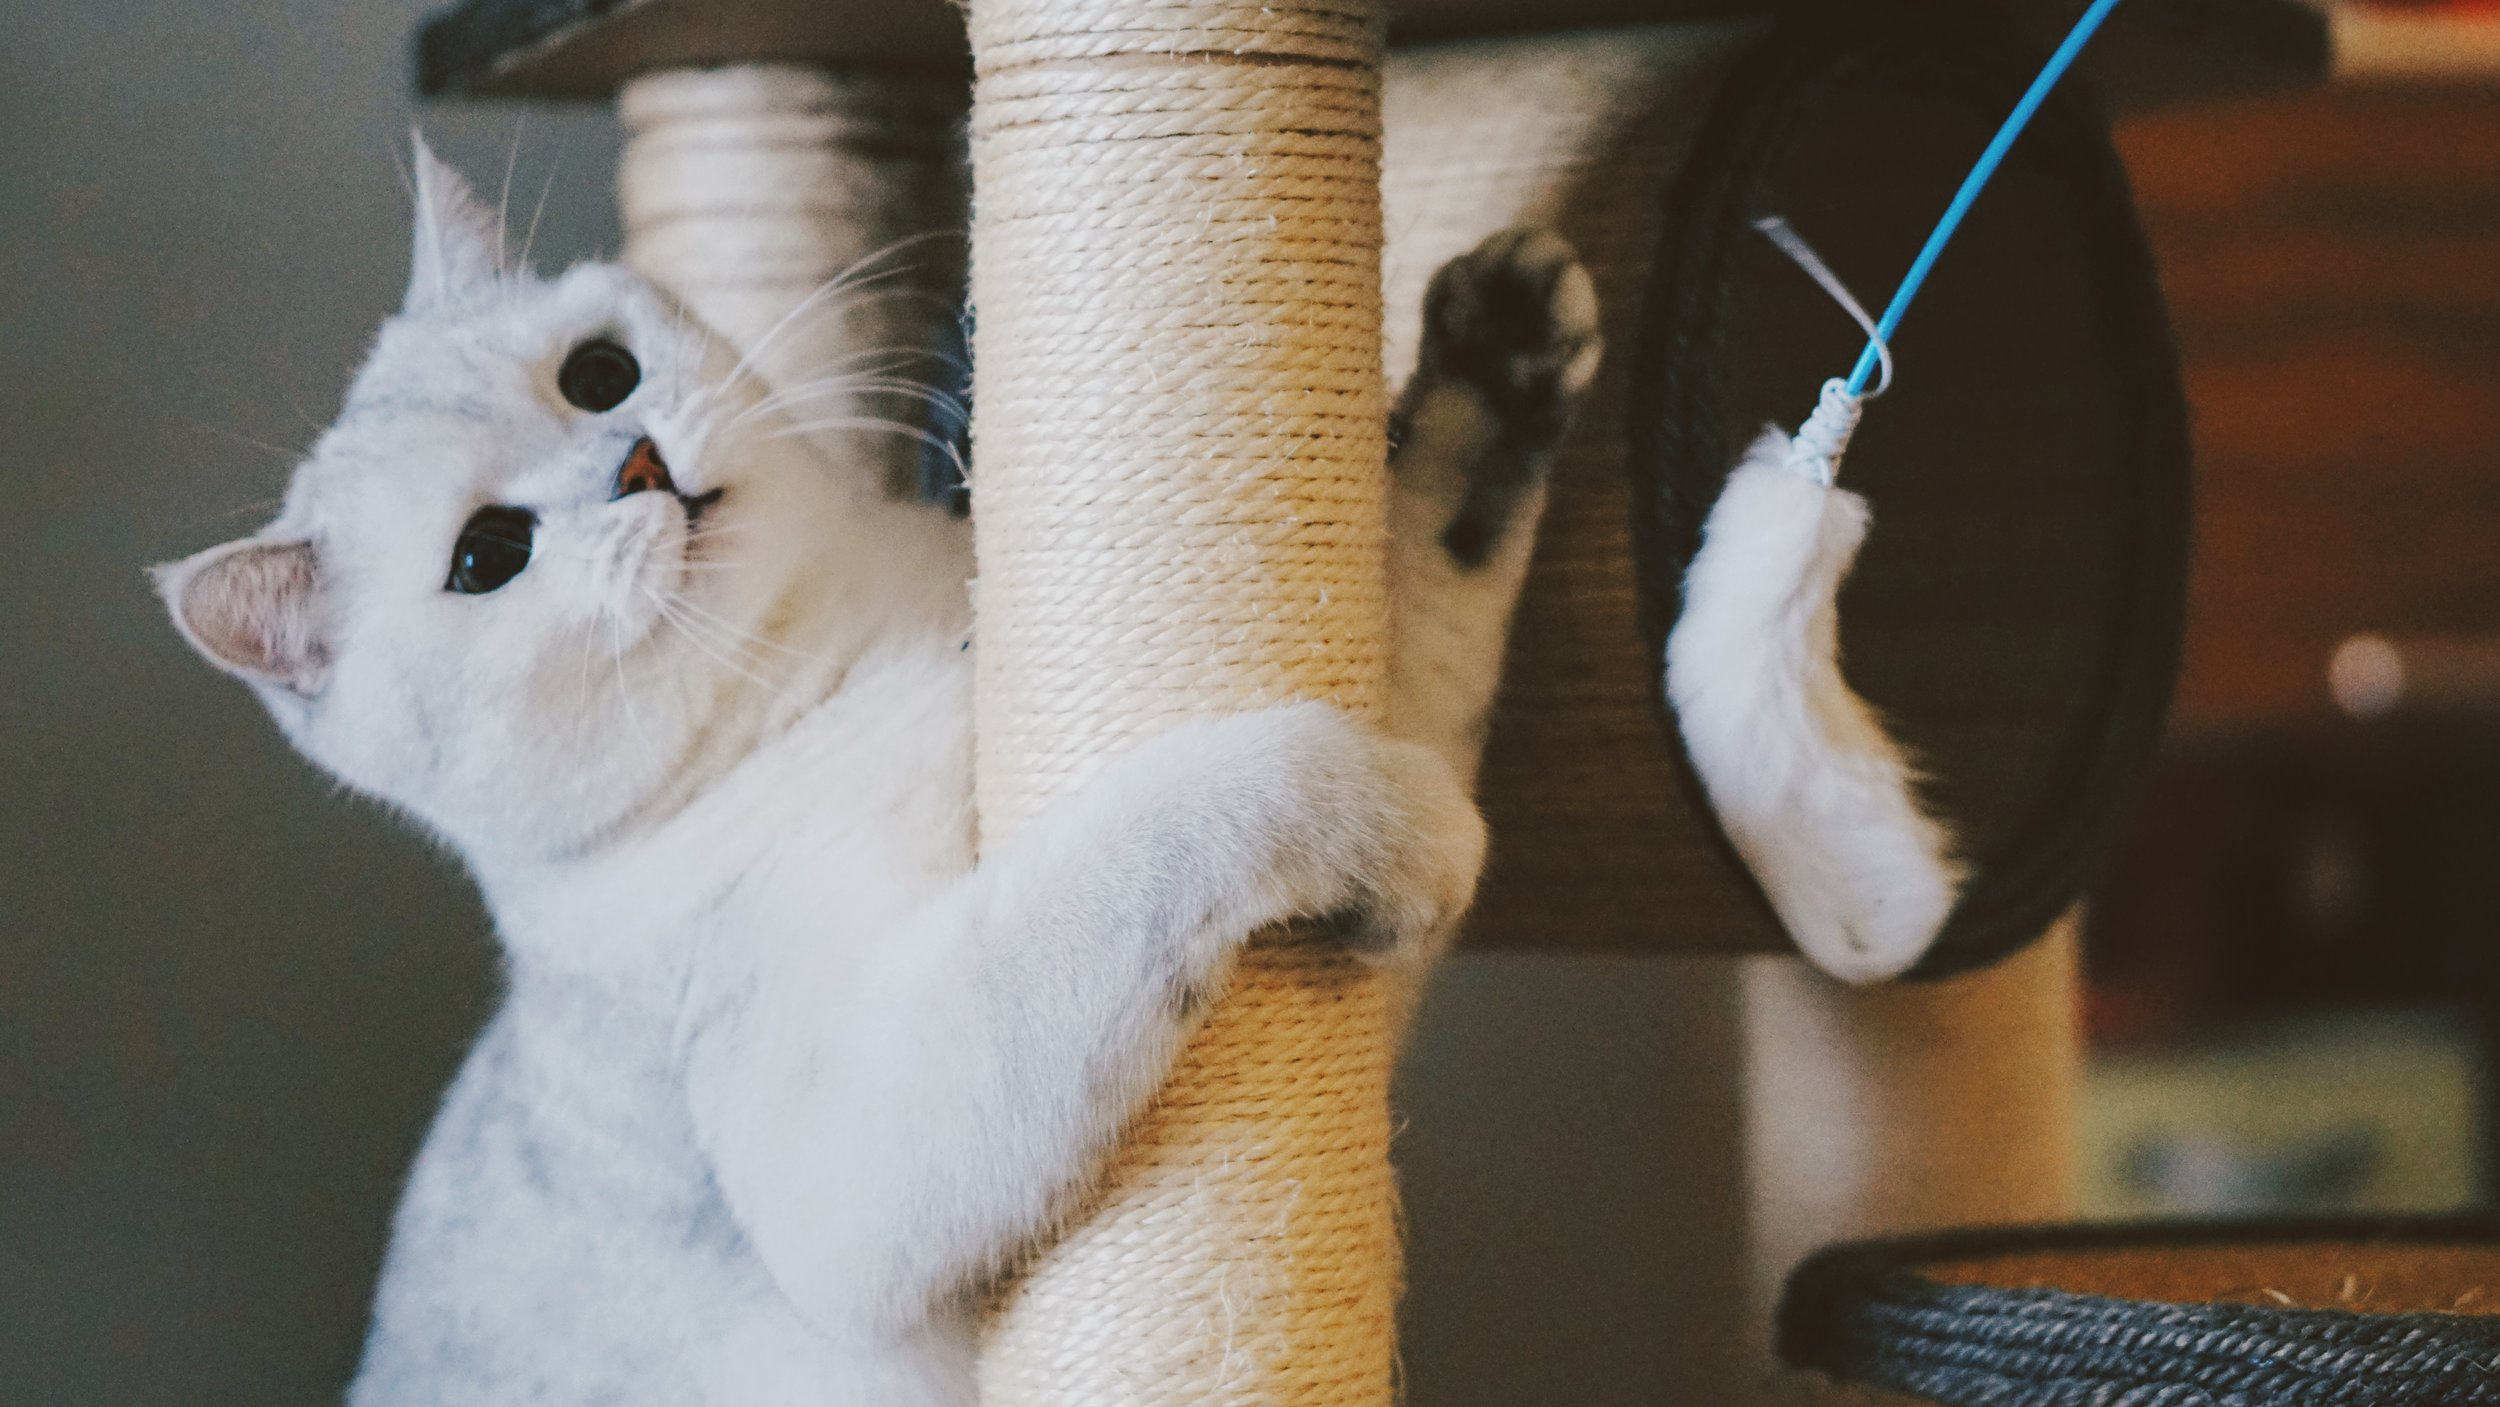 Let's Play! - Balls, bubbles, laser pointers, catnip mice, feathers; we've got them all!